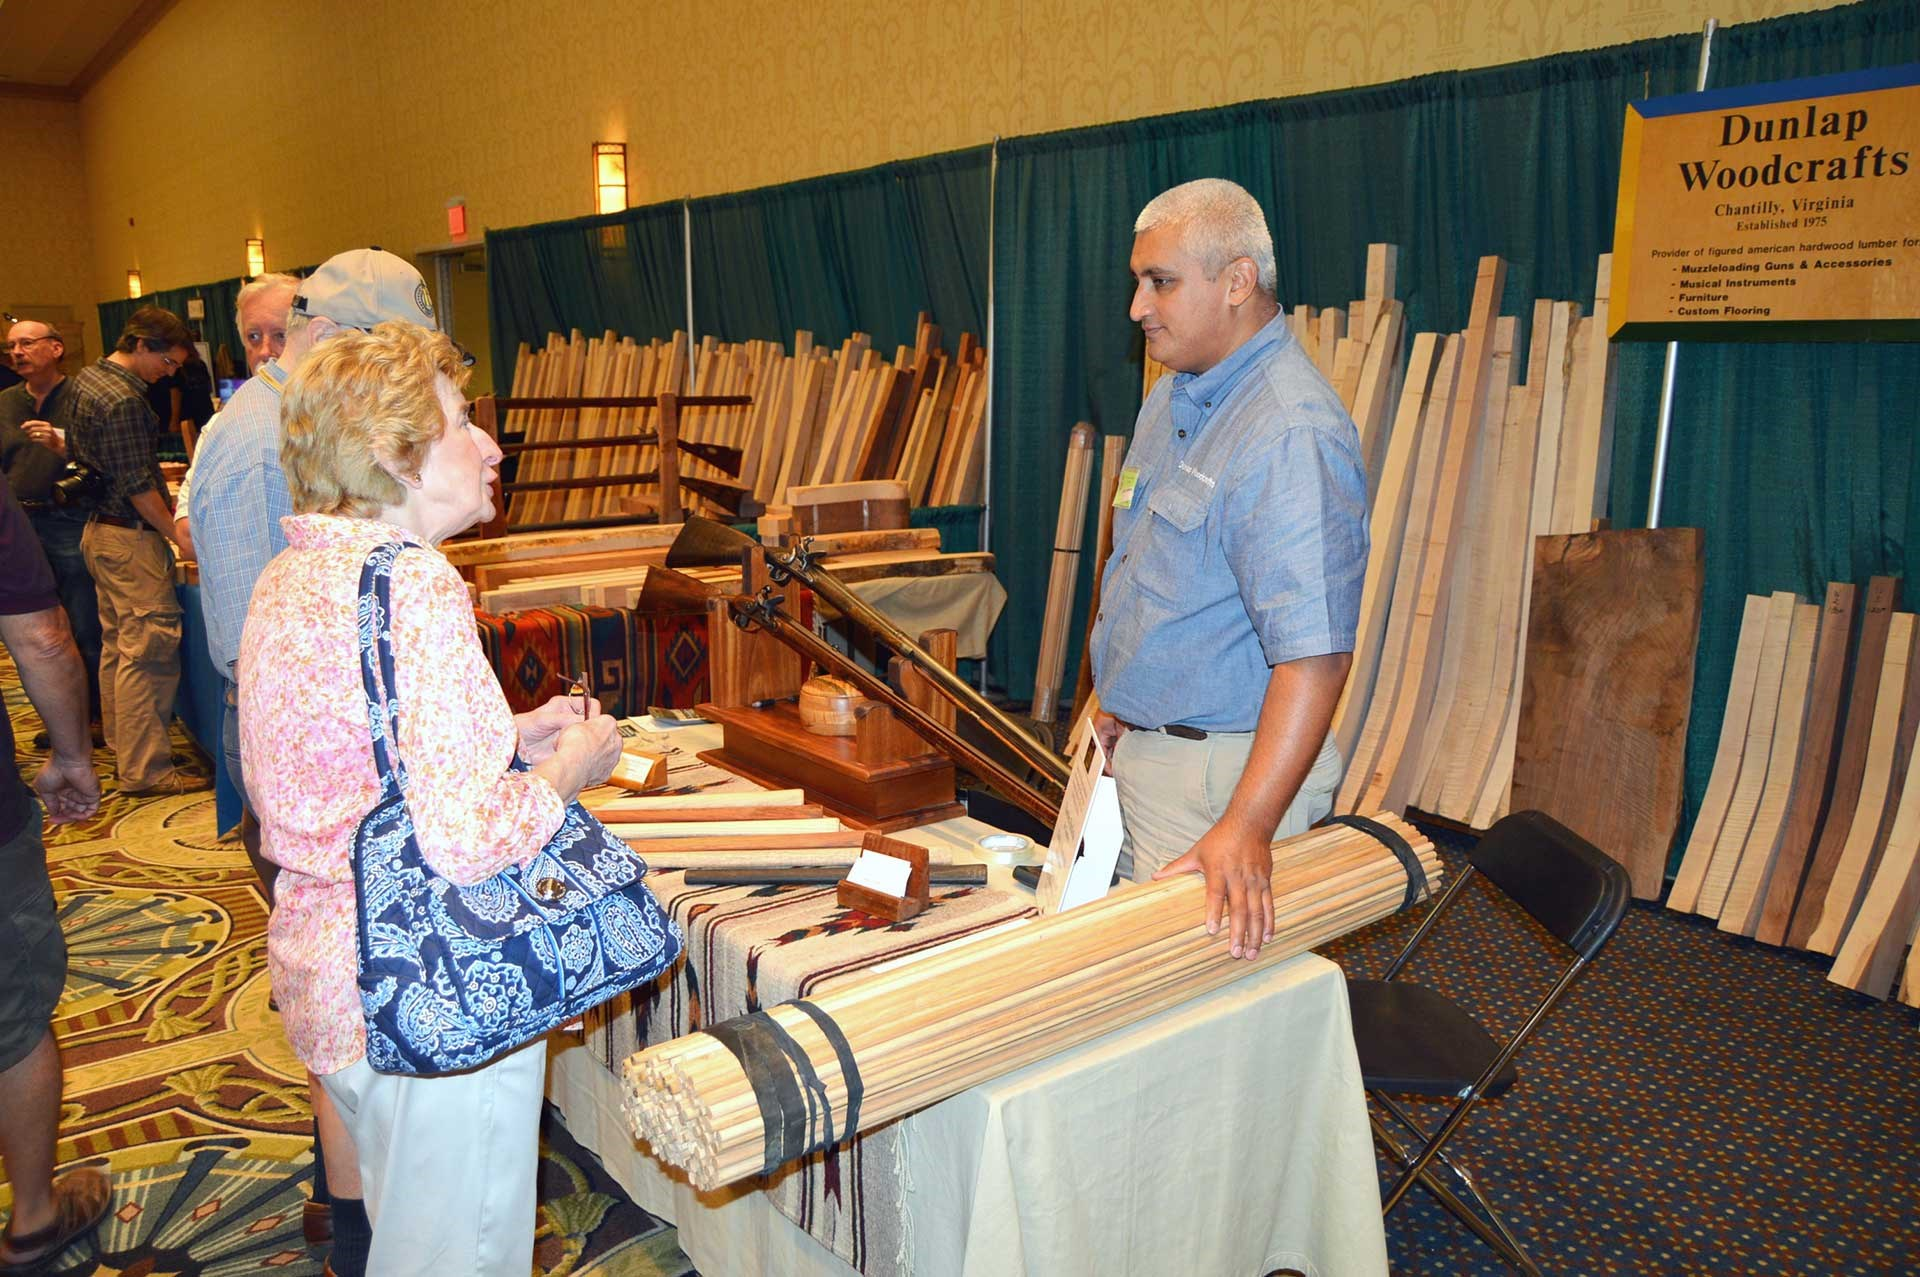 A pile of unfinished rifle stocks lay against the back wall behind a vendor and a woman talking at the CLA Show.